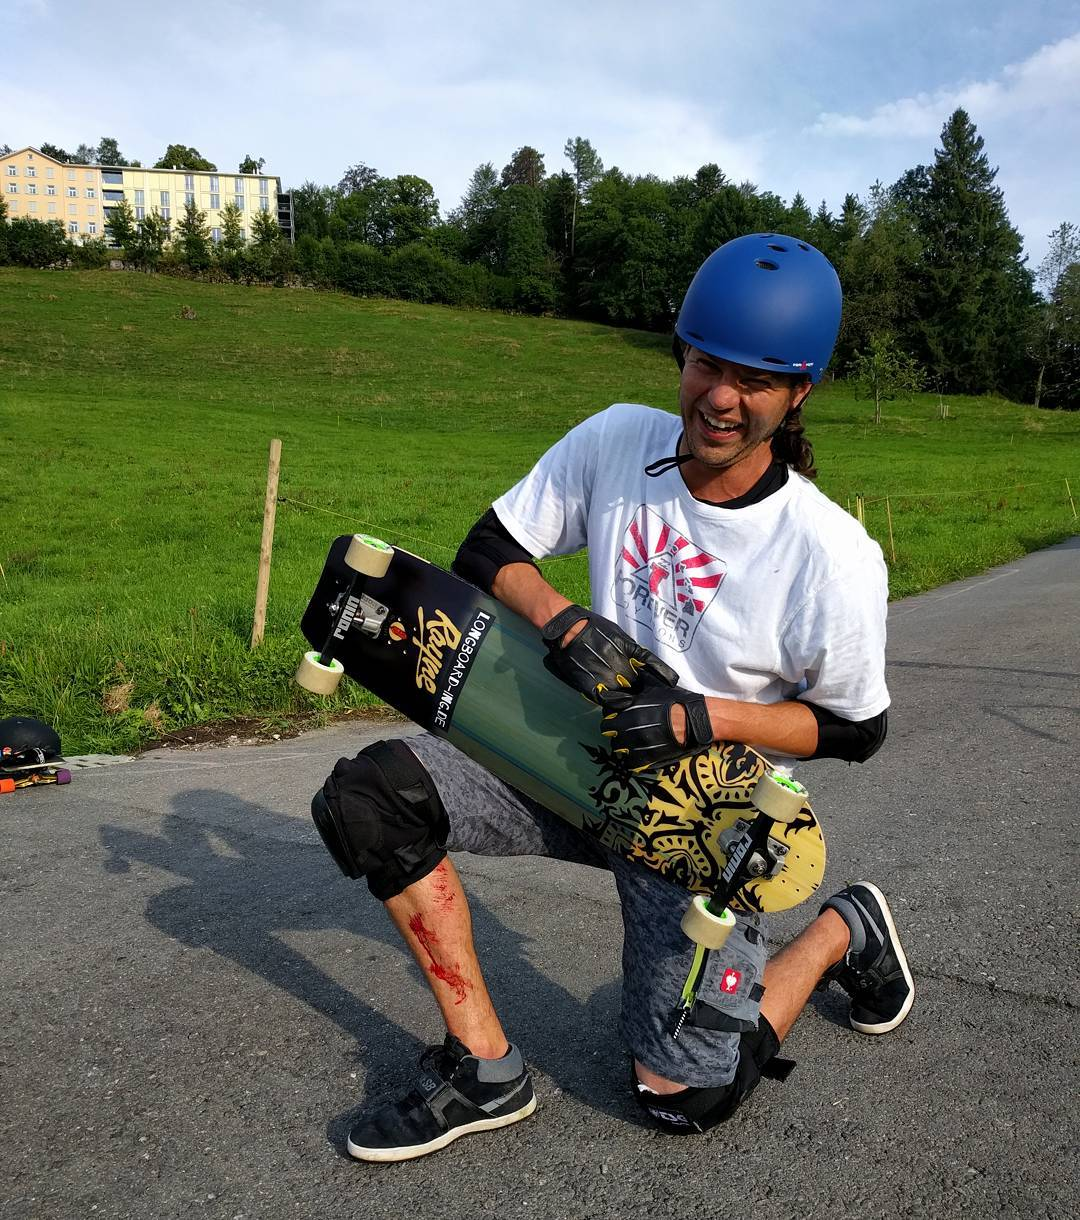 Jorge from @kaoslongboarding made love with his #viciousgrip today. #skateingolstadt #kaoslongboarding